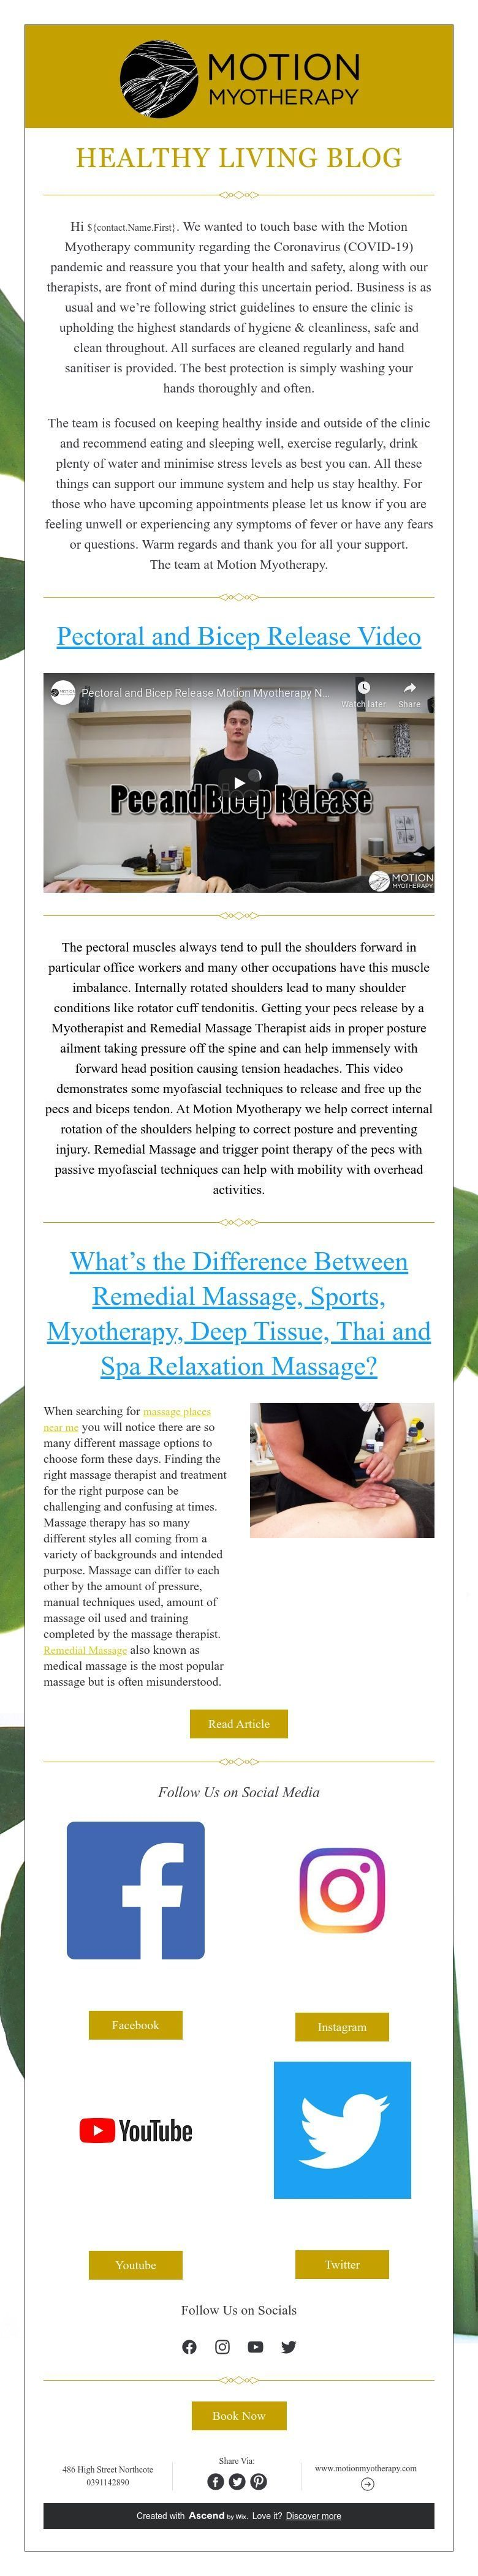 Healthy Living Blog in 2020 Myotherapy, Remedial massage